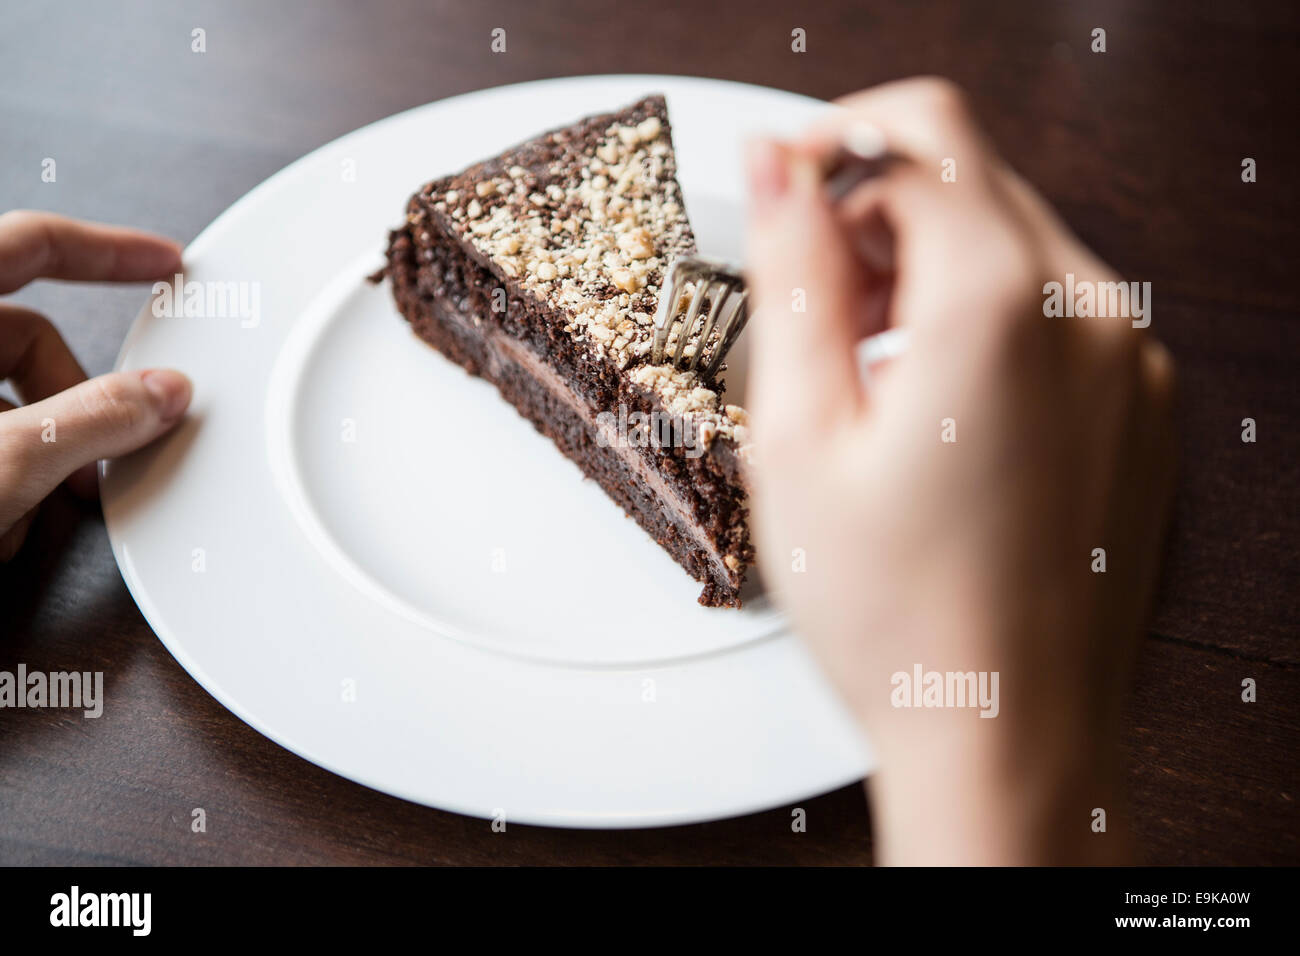 Close-up of woman's hand holding fork to chocolate pastry Stock Photo